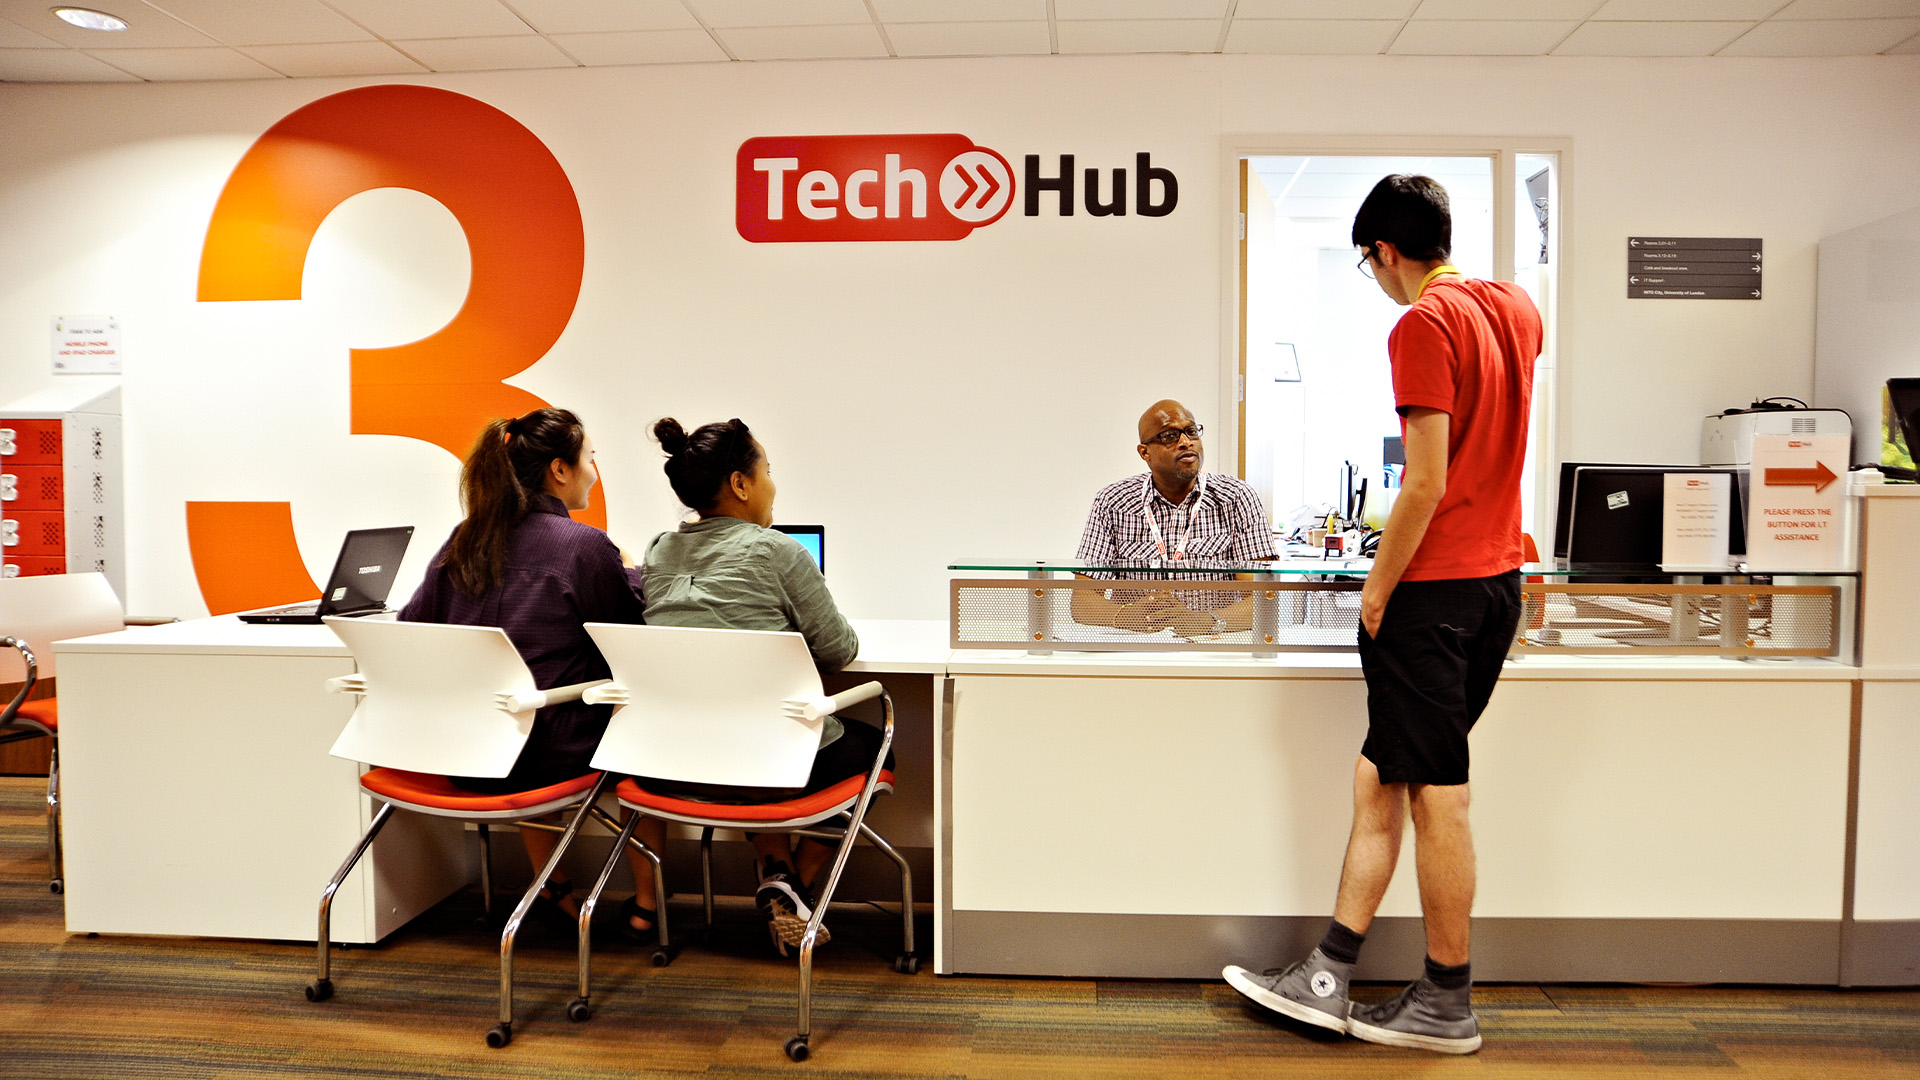 The on-campus tech hub offers technology support to students